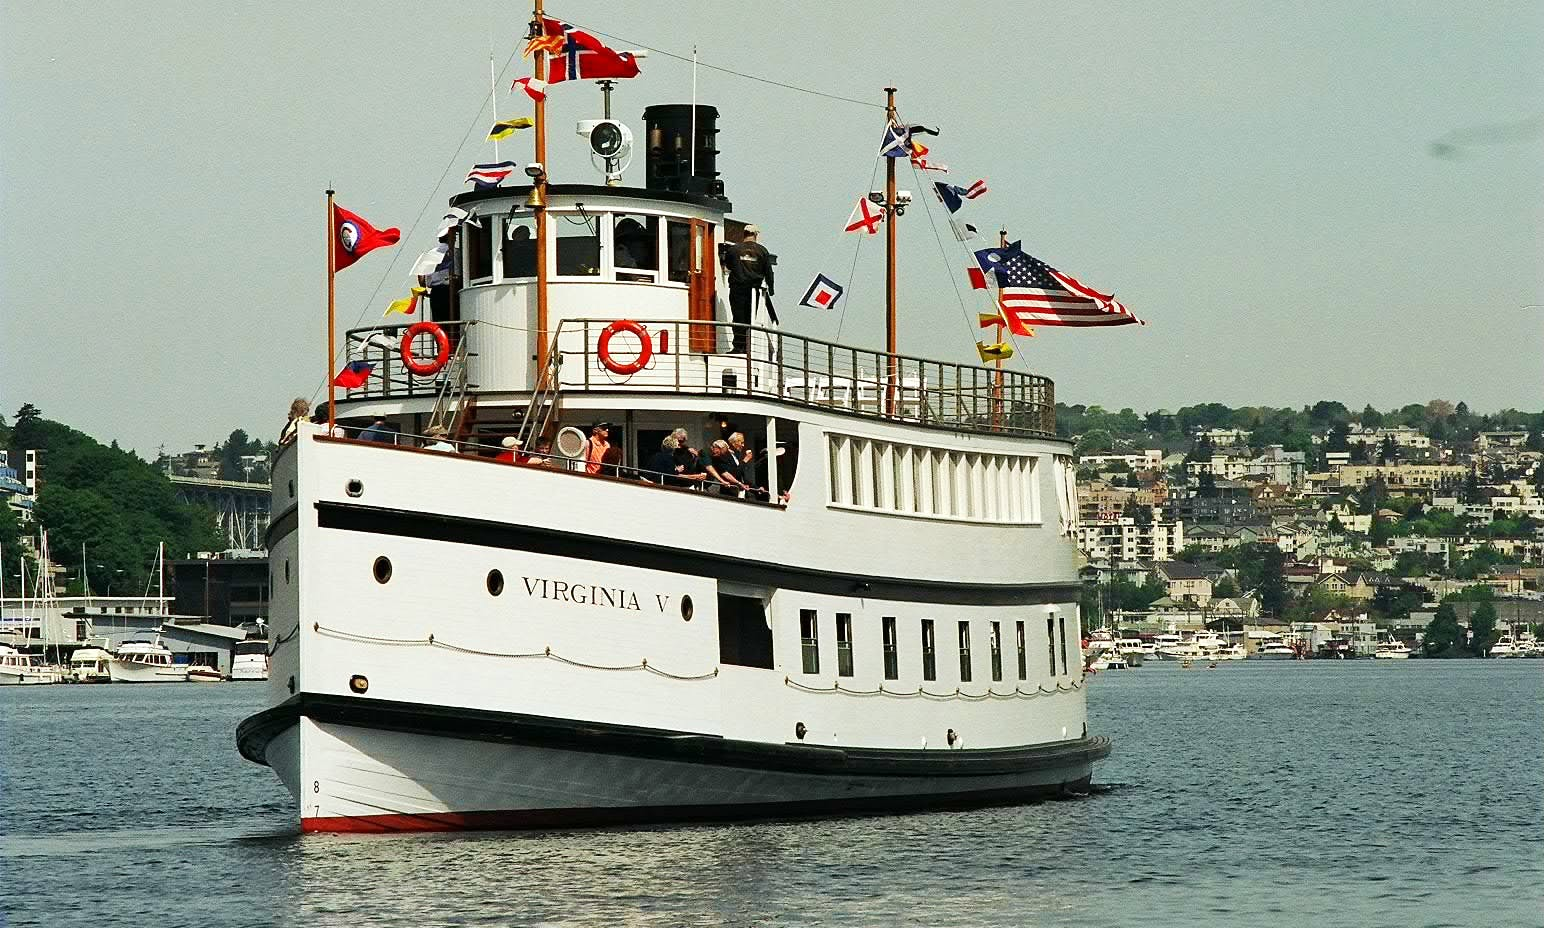 """The Steamer Virginia V"" Passenger Boat Rental in Seattle, Washington"